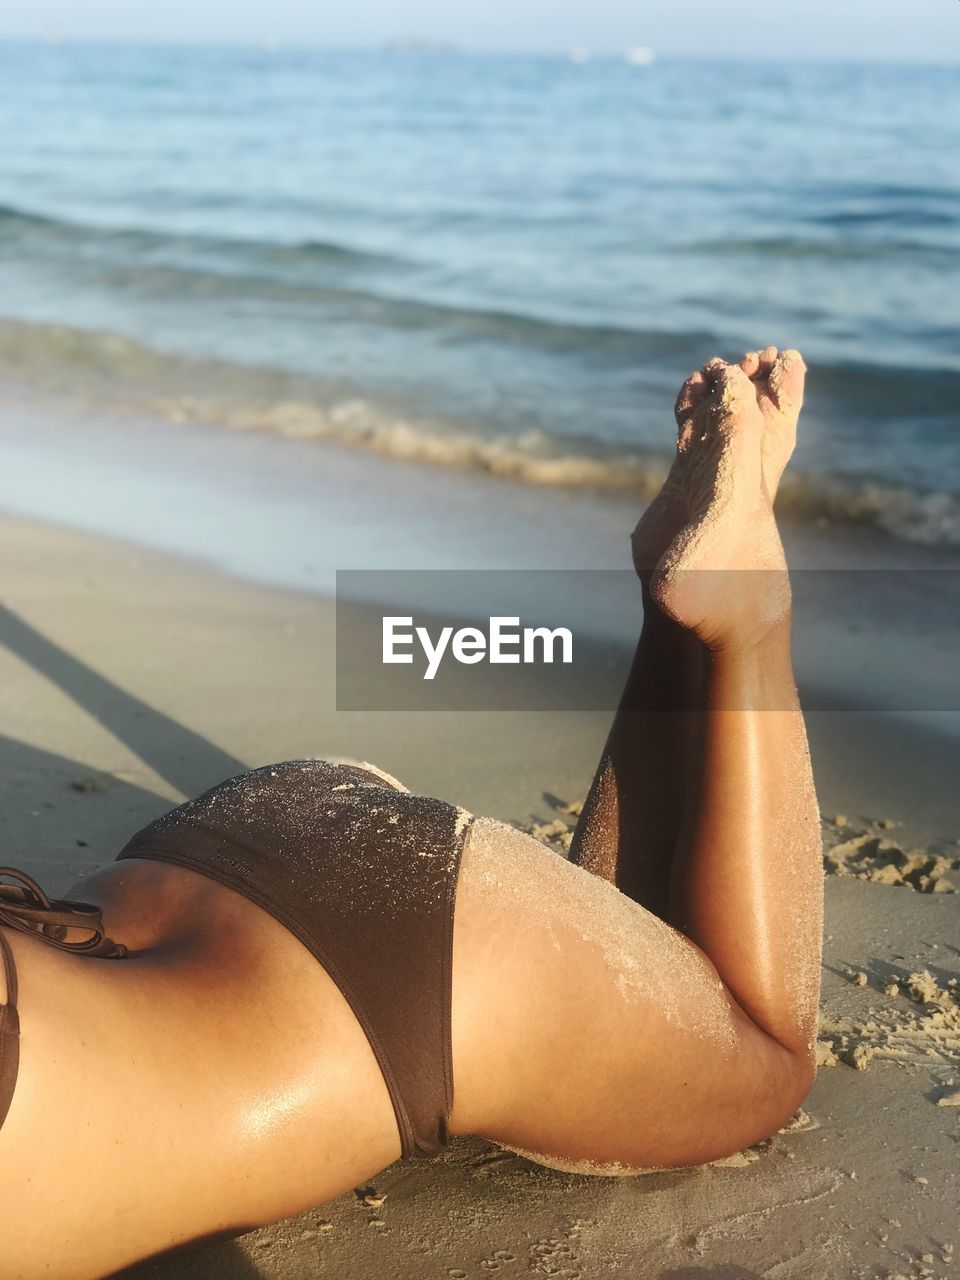 beach, land, sea, water, lying down, one person, relaxation, sand, barefoot, nature, focus on foreground, lifestyles, leisure activity, day, real people, young adult, human leg, outdoors